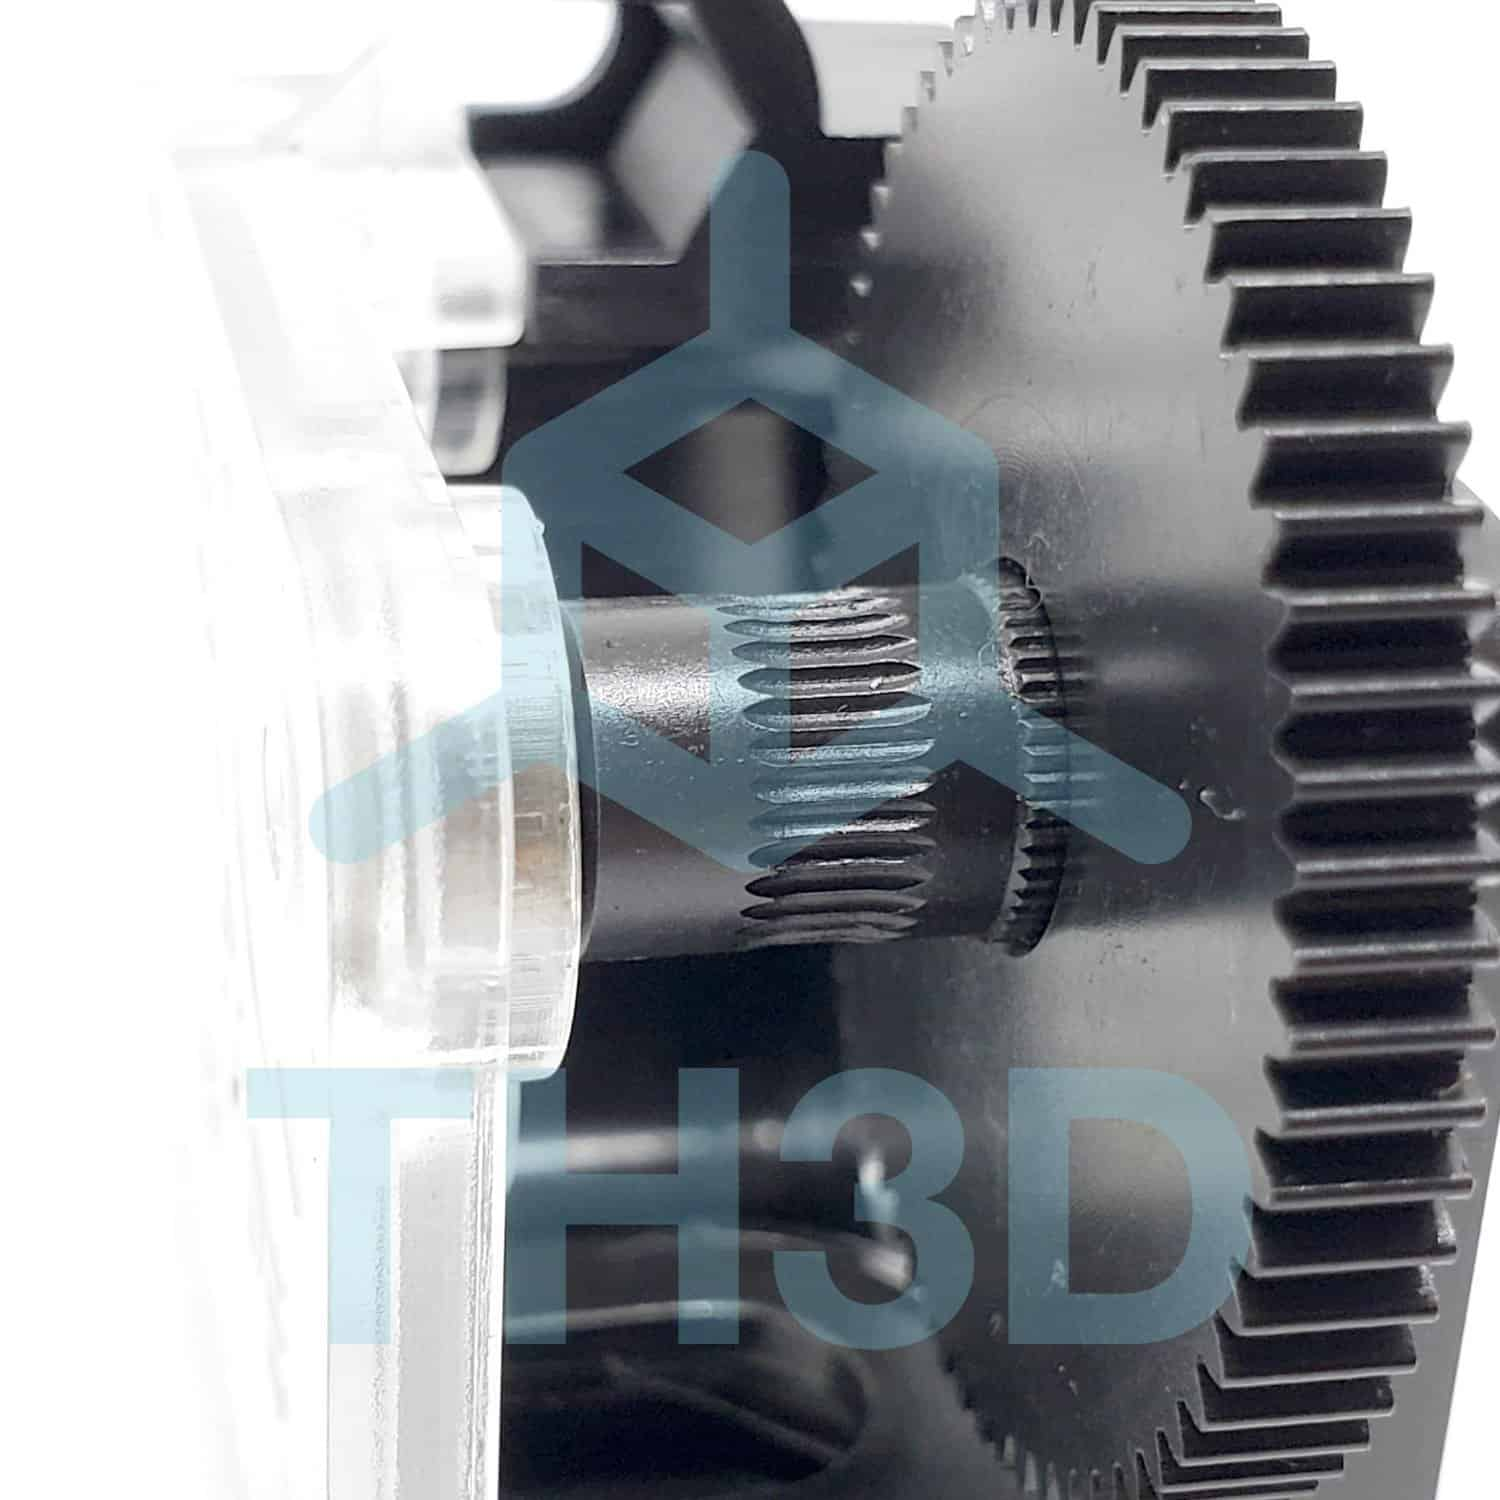 Tough Extruder - 3:1 Gearing, Bowden OR Direct 1 75mm - Titan Compatible -  TH3D Studio LLC